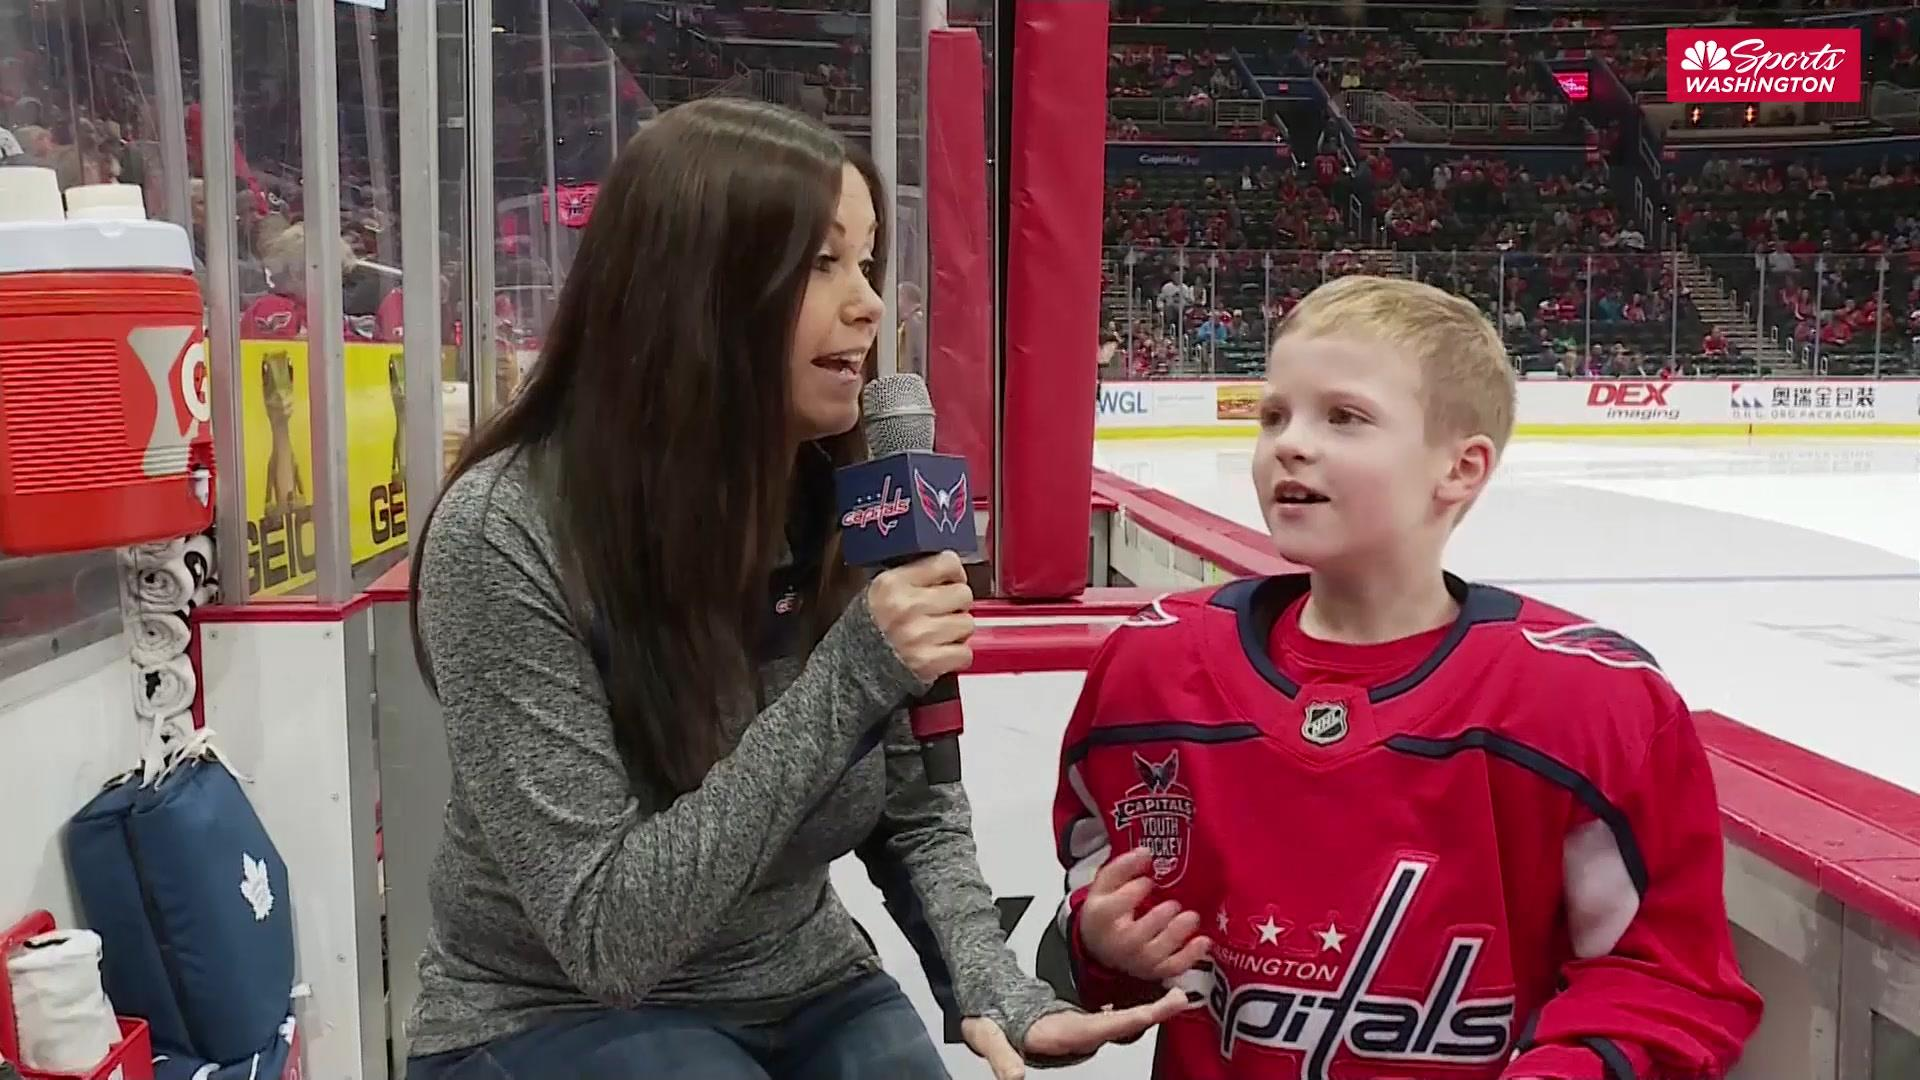 Mite on Ice hockey player during Capitals intermission loves everyone